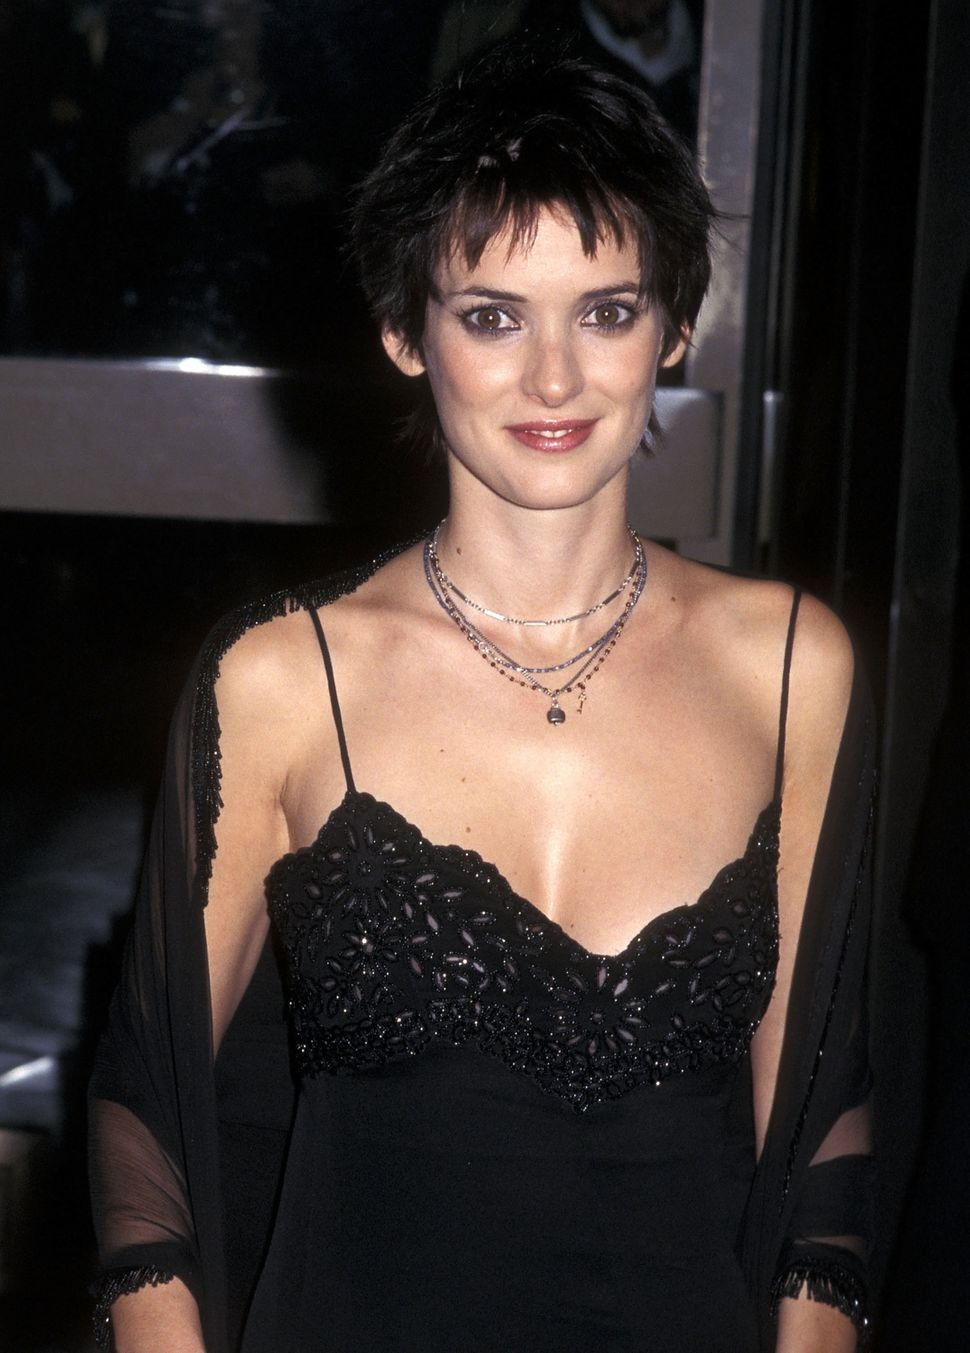 Actress Winona Ryder attends the 36th Annual New York Film Festival Opening Night - 'Celebrity' Screening on Sept. 25, 1998 a